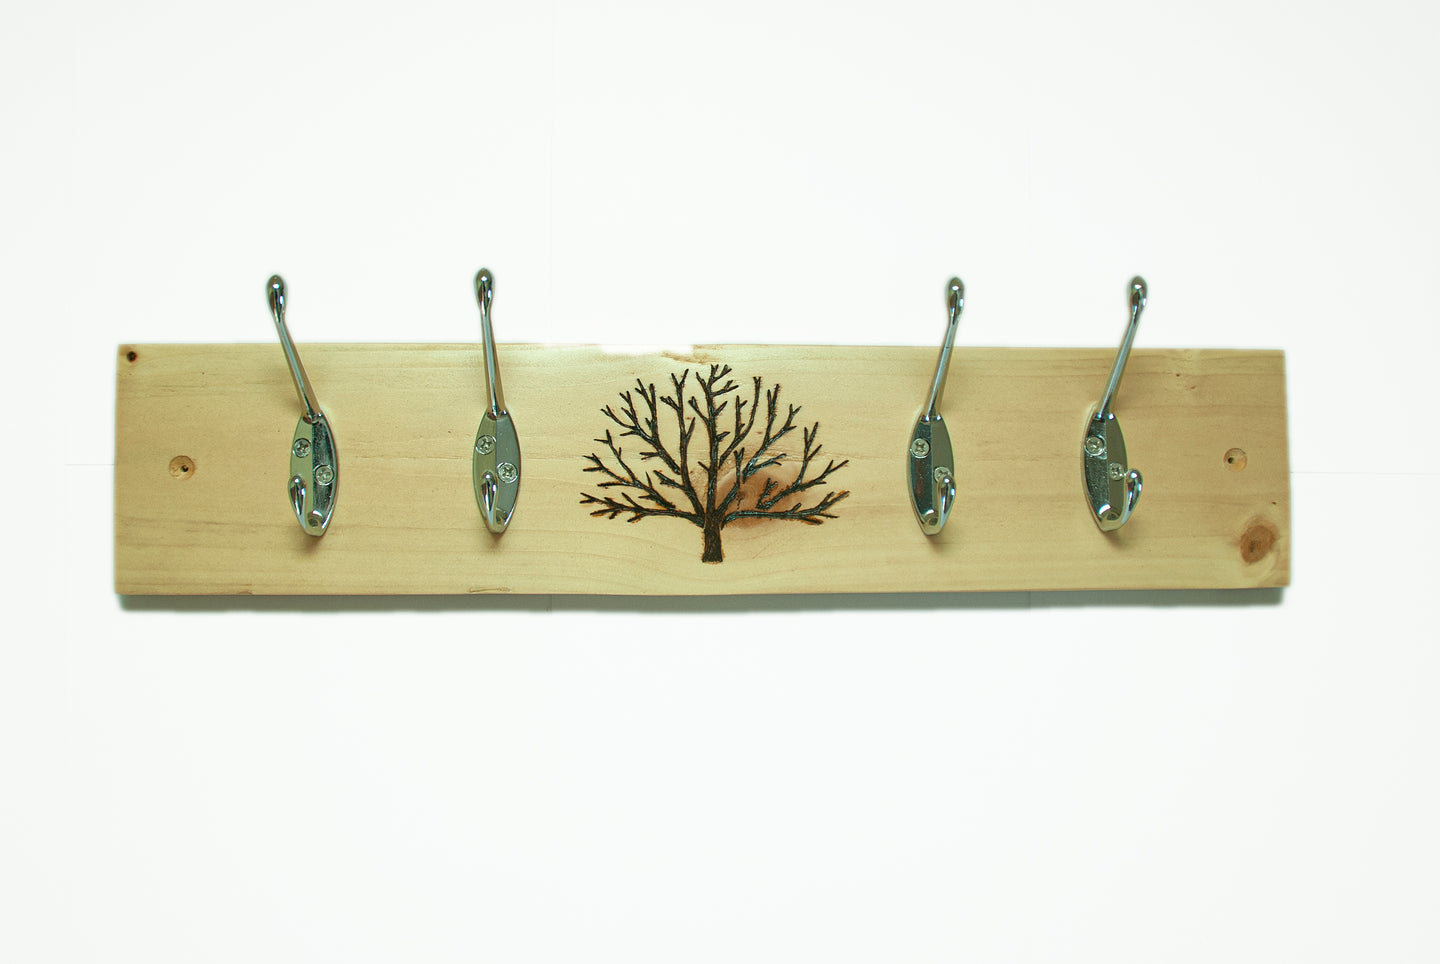 Tree Coat Rack - Light Finish